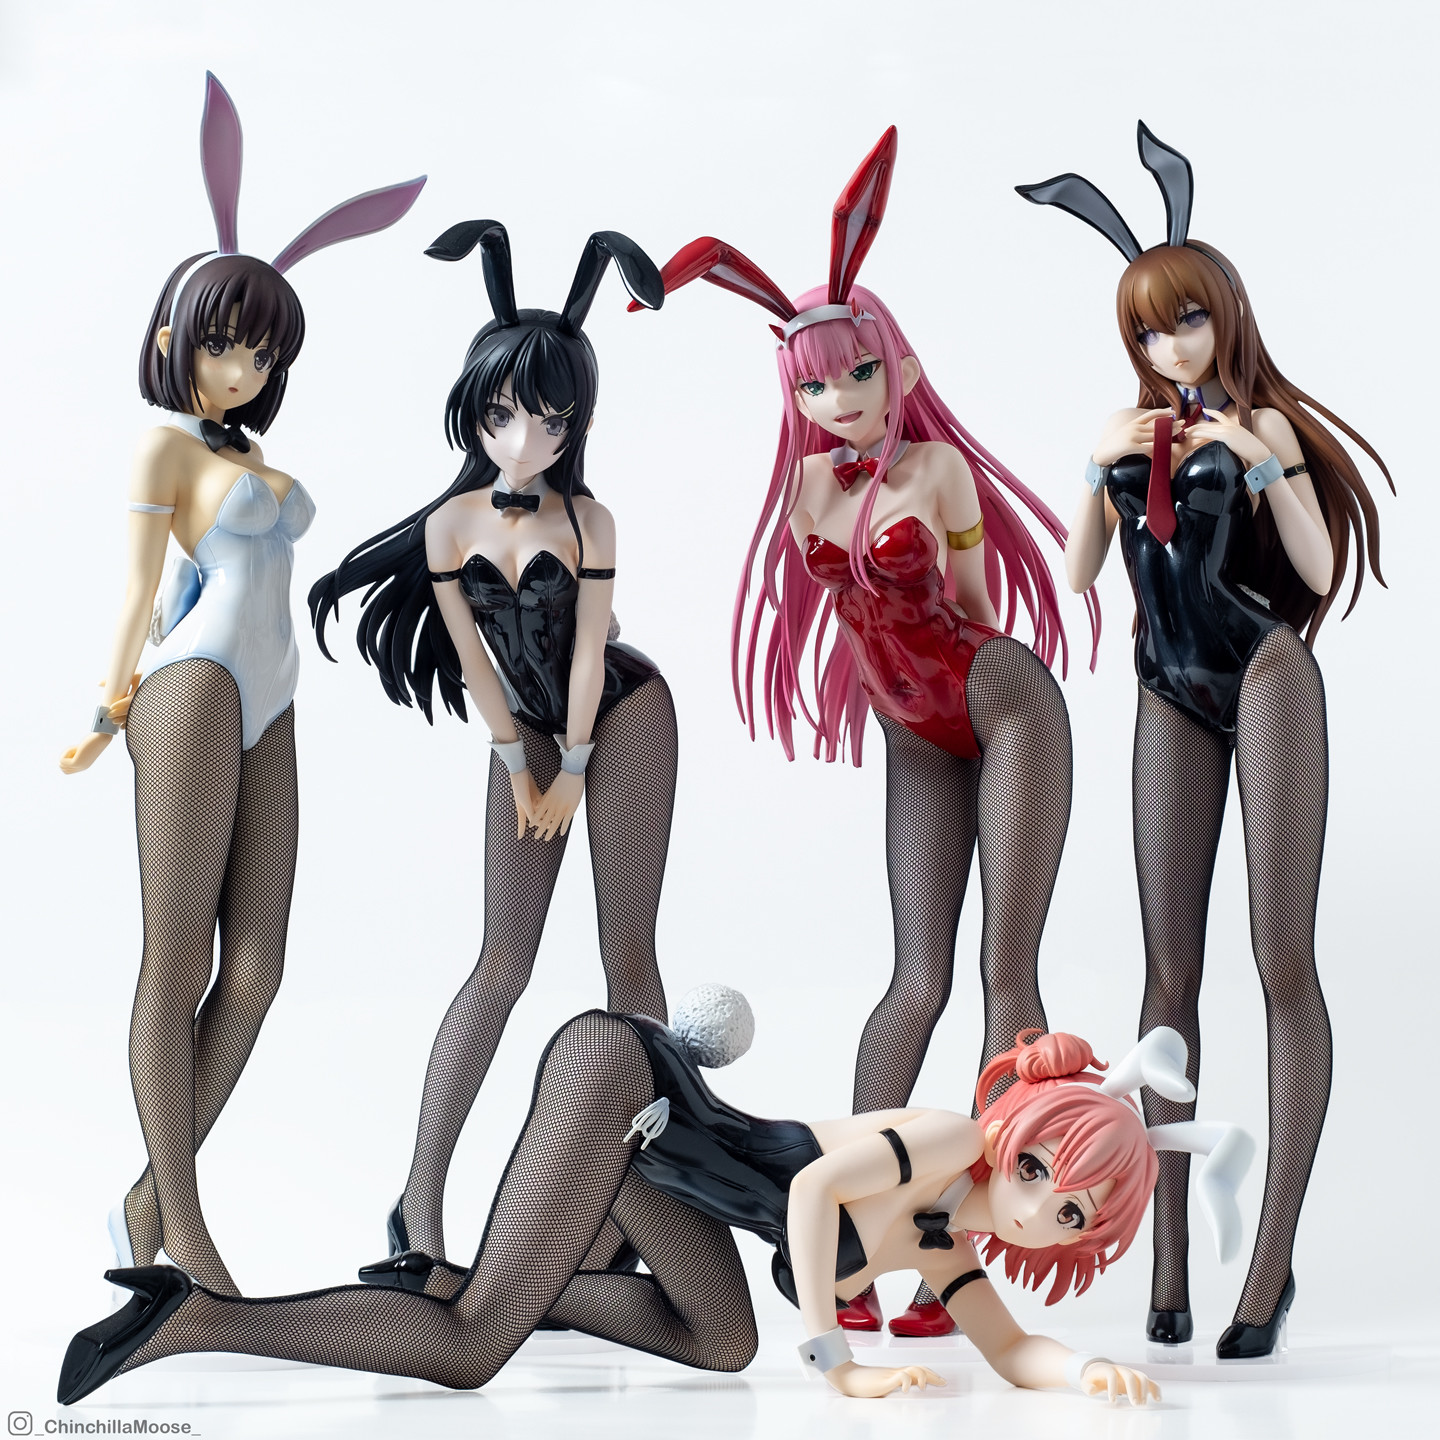 https://static.myfigurecollection.net/upload/pictures/2021/04/04/2679459.jpeg